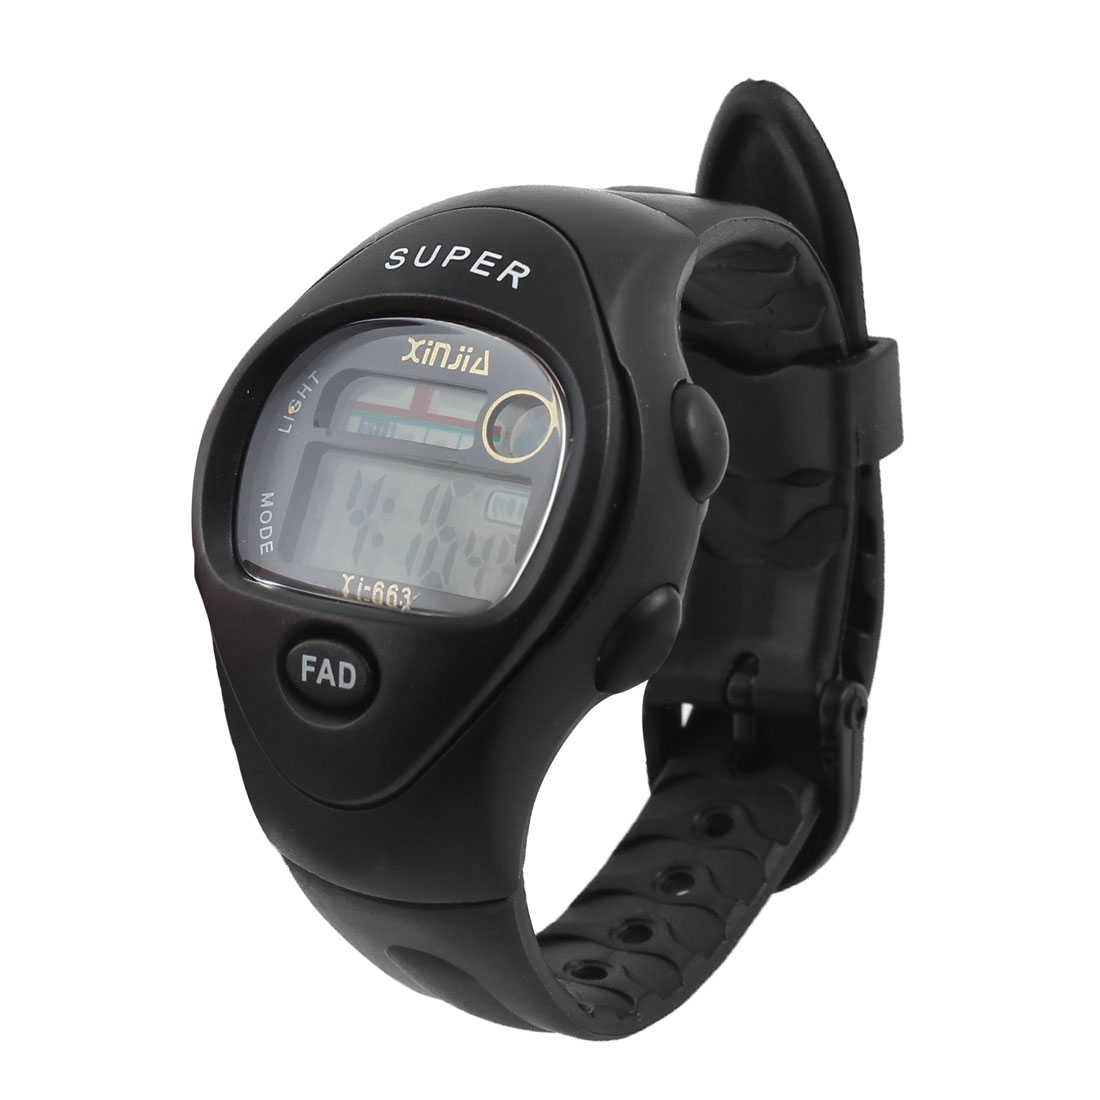 Lady LCD Display Digital 11 Hole Adjustable Band Stopwatch Watch Black